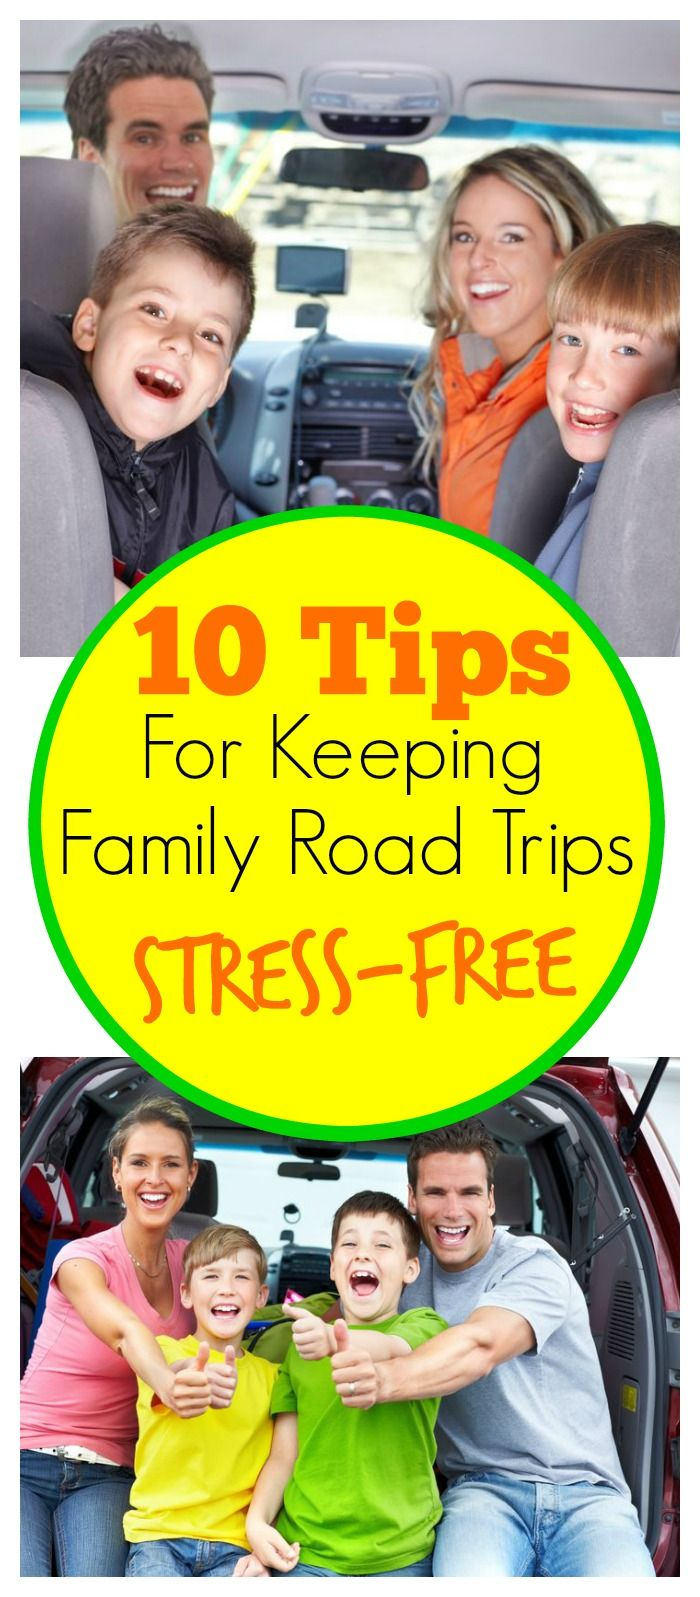 10 tips for keeping family road trips stress free